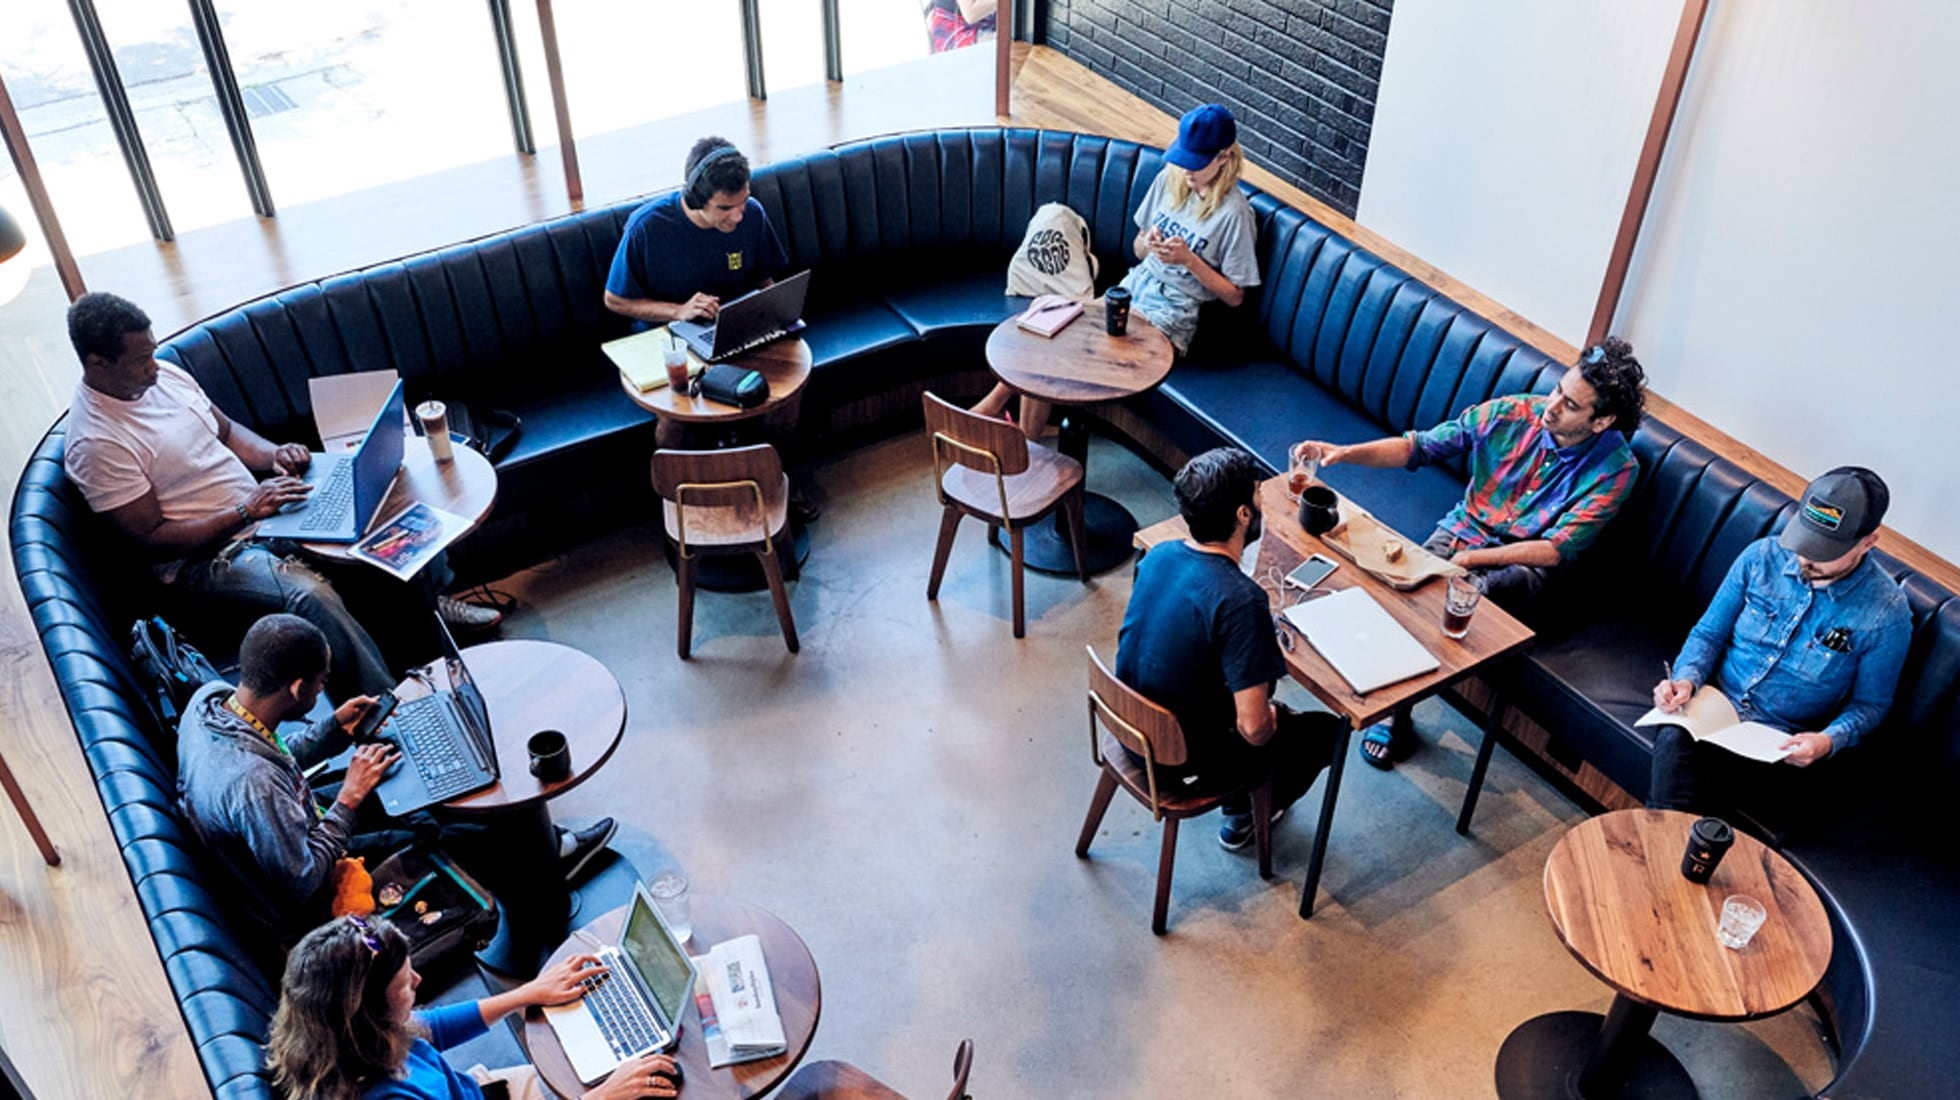 About a dozen people sitting individually at a café and working at laptops or in a notebook